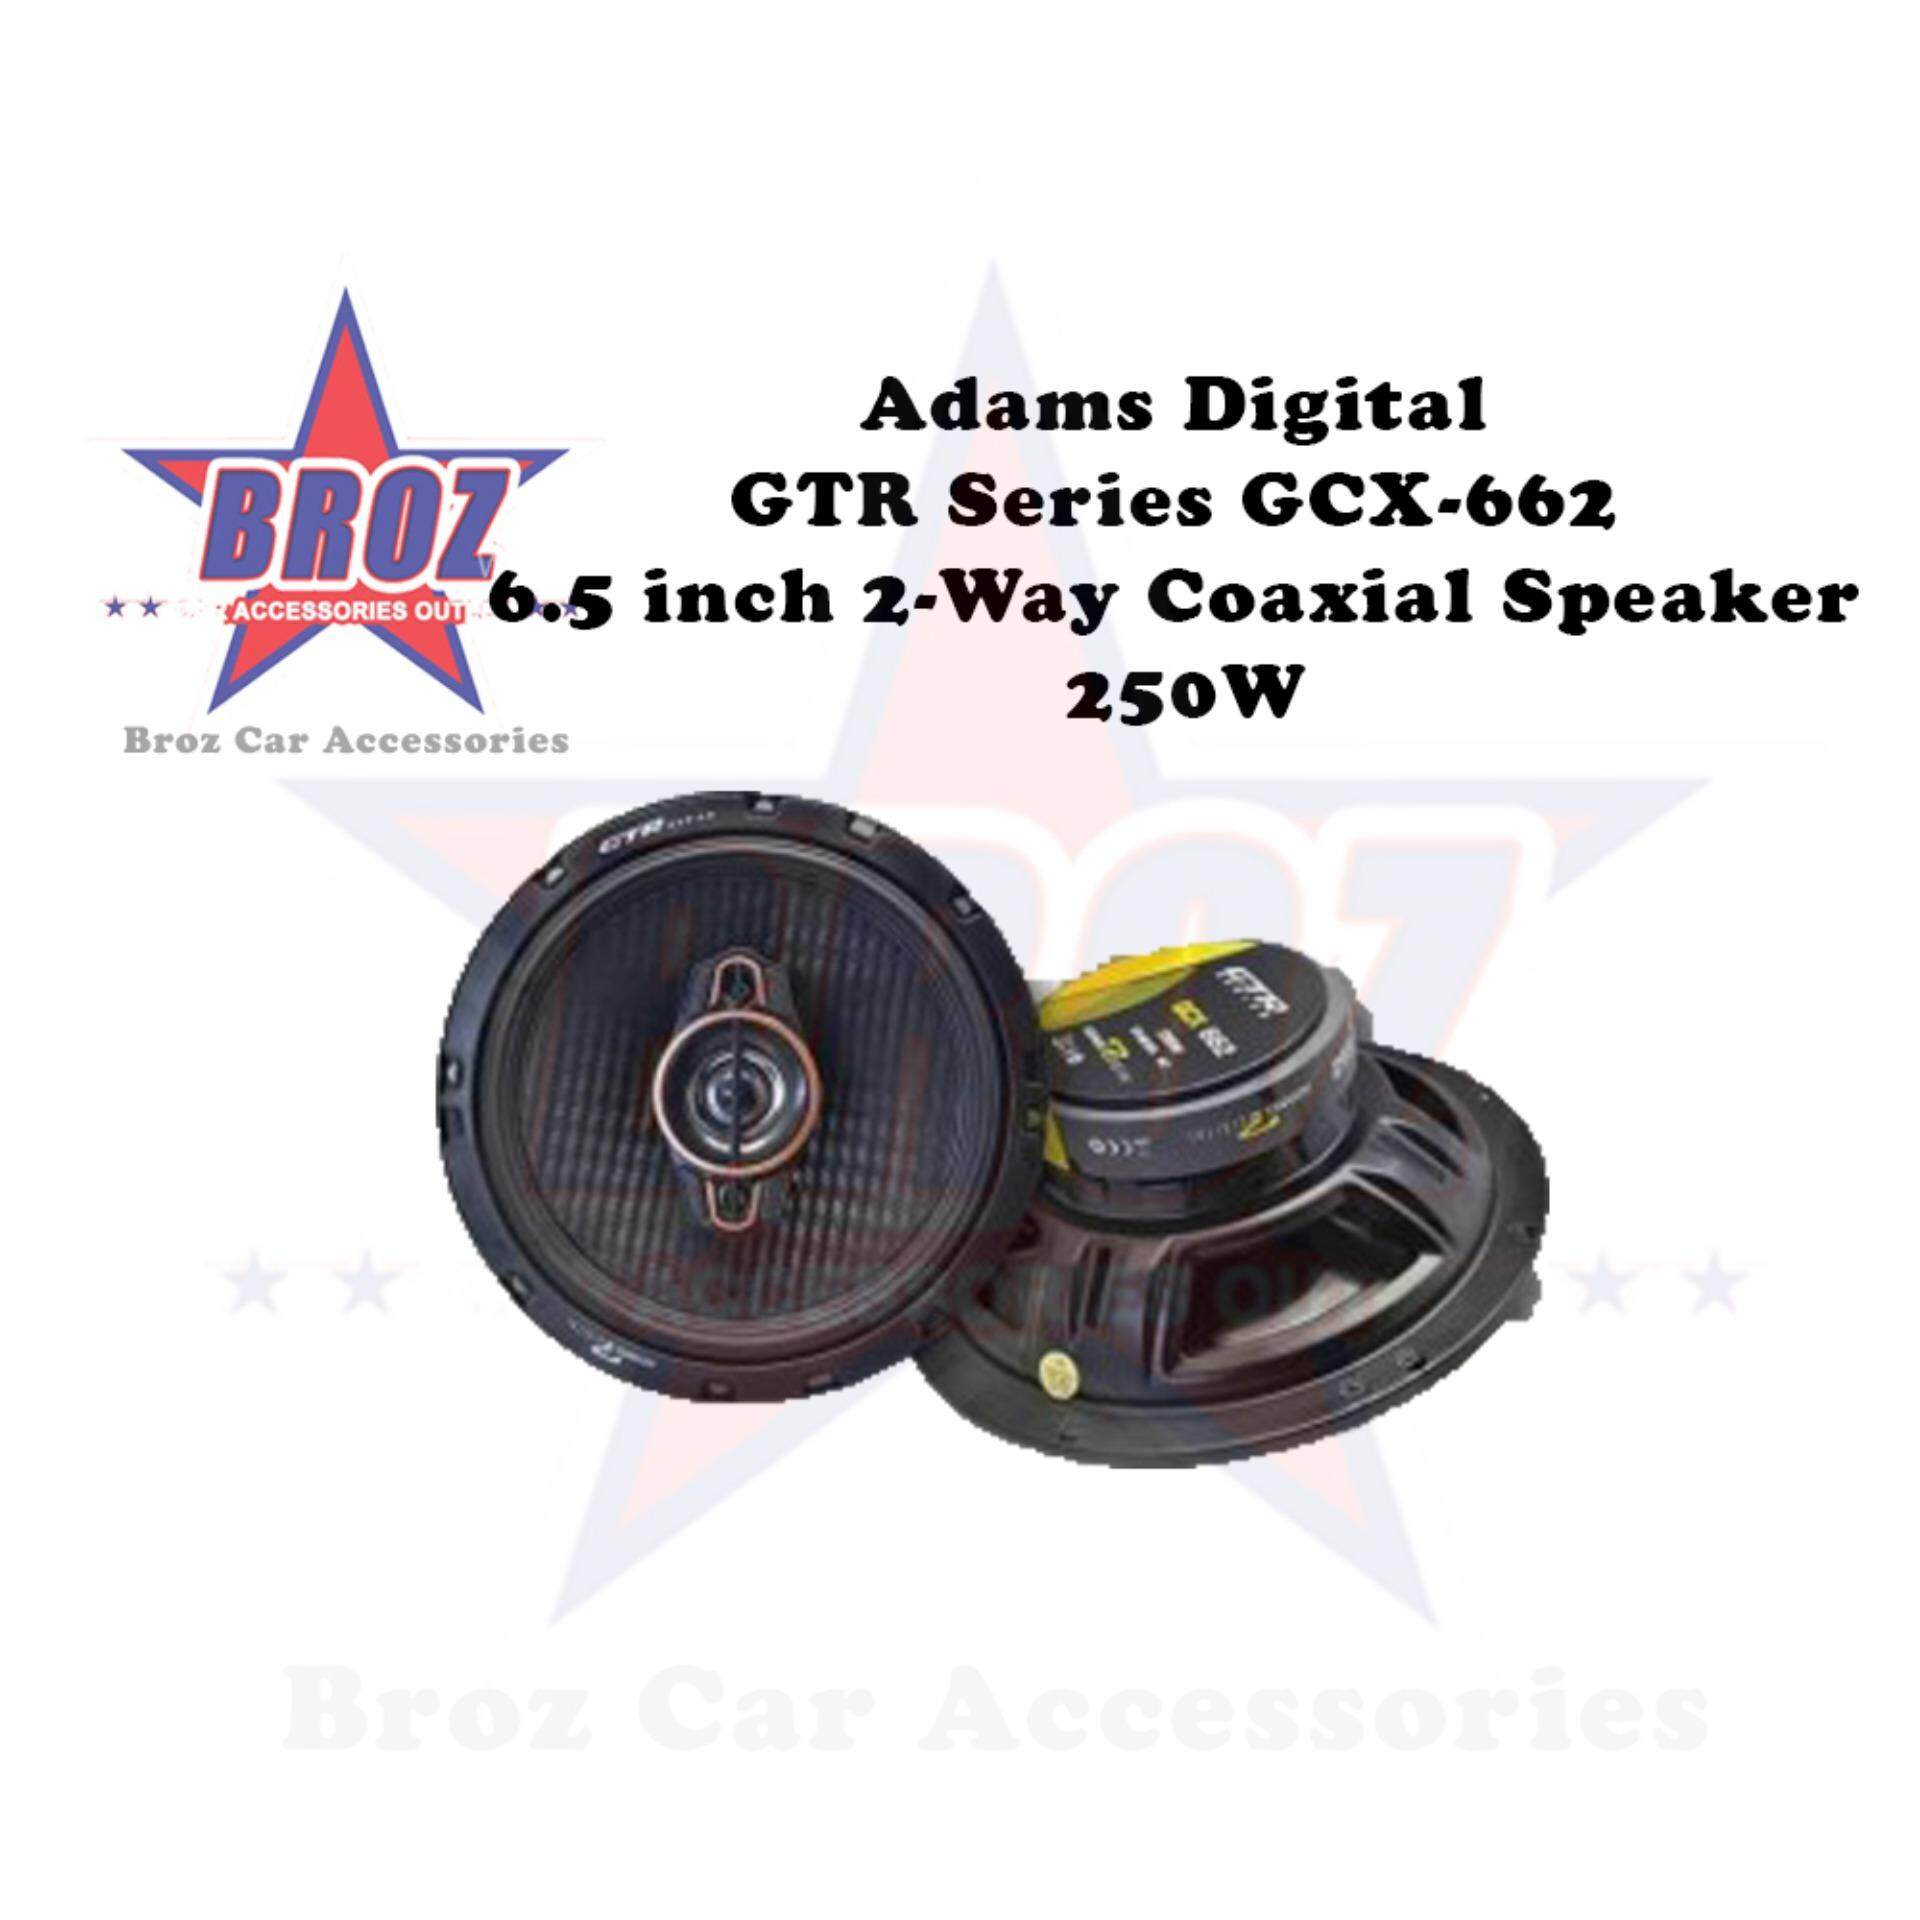 Adams Digital GTR Series GCX-662 6.5 inch 2-Way Coaxial Speaker 250W